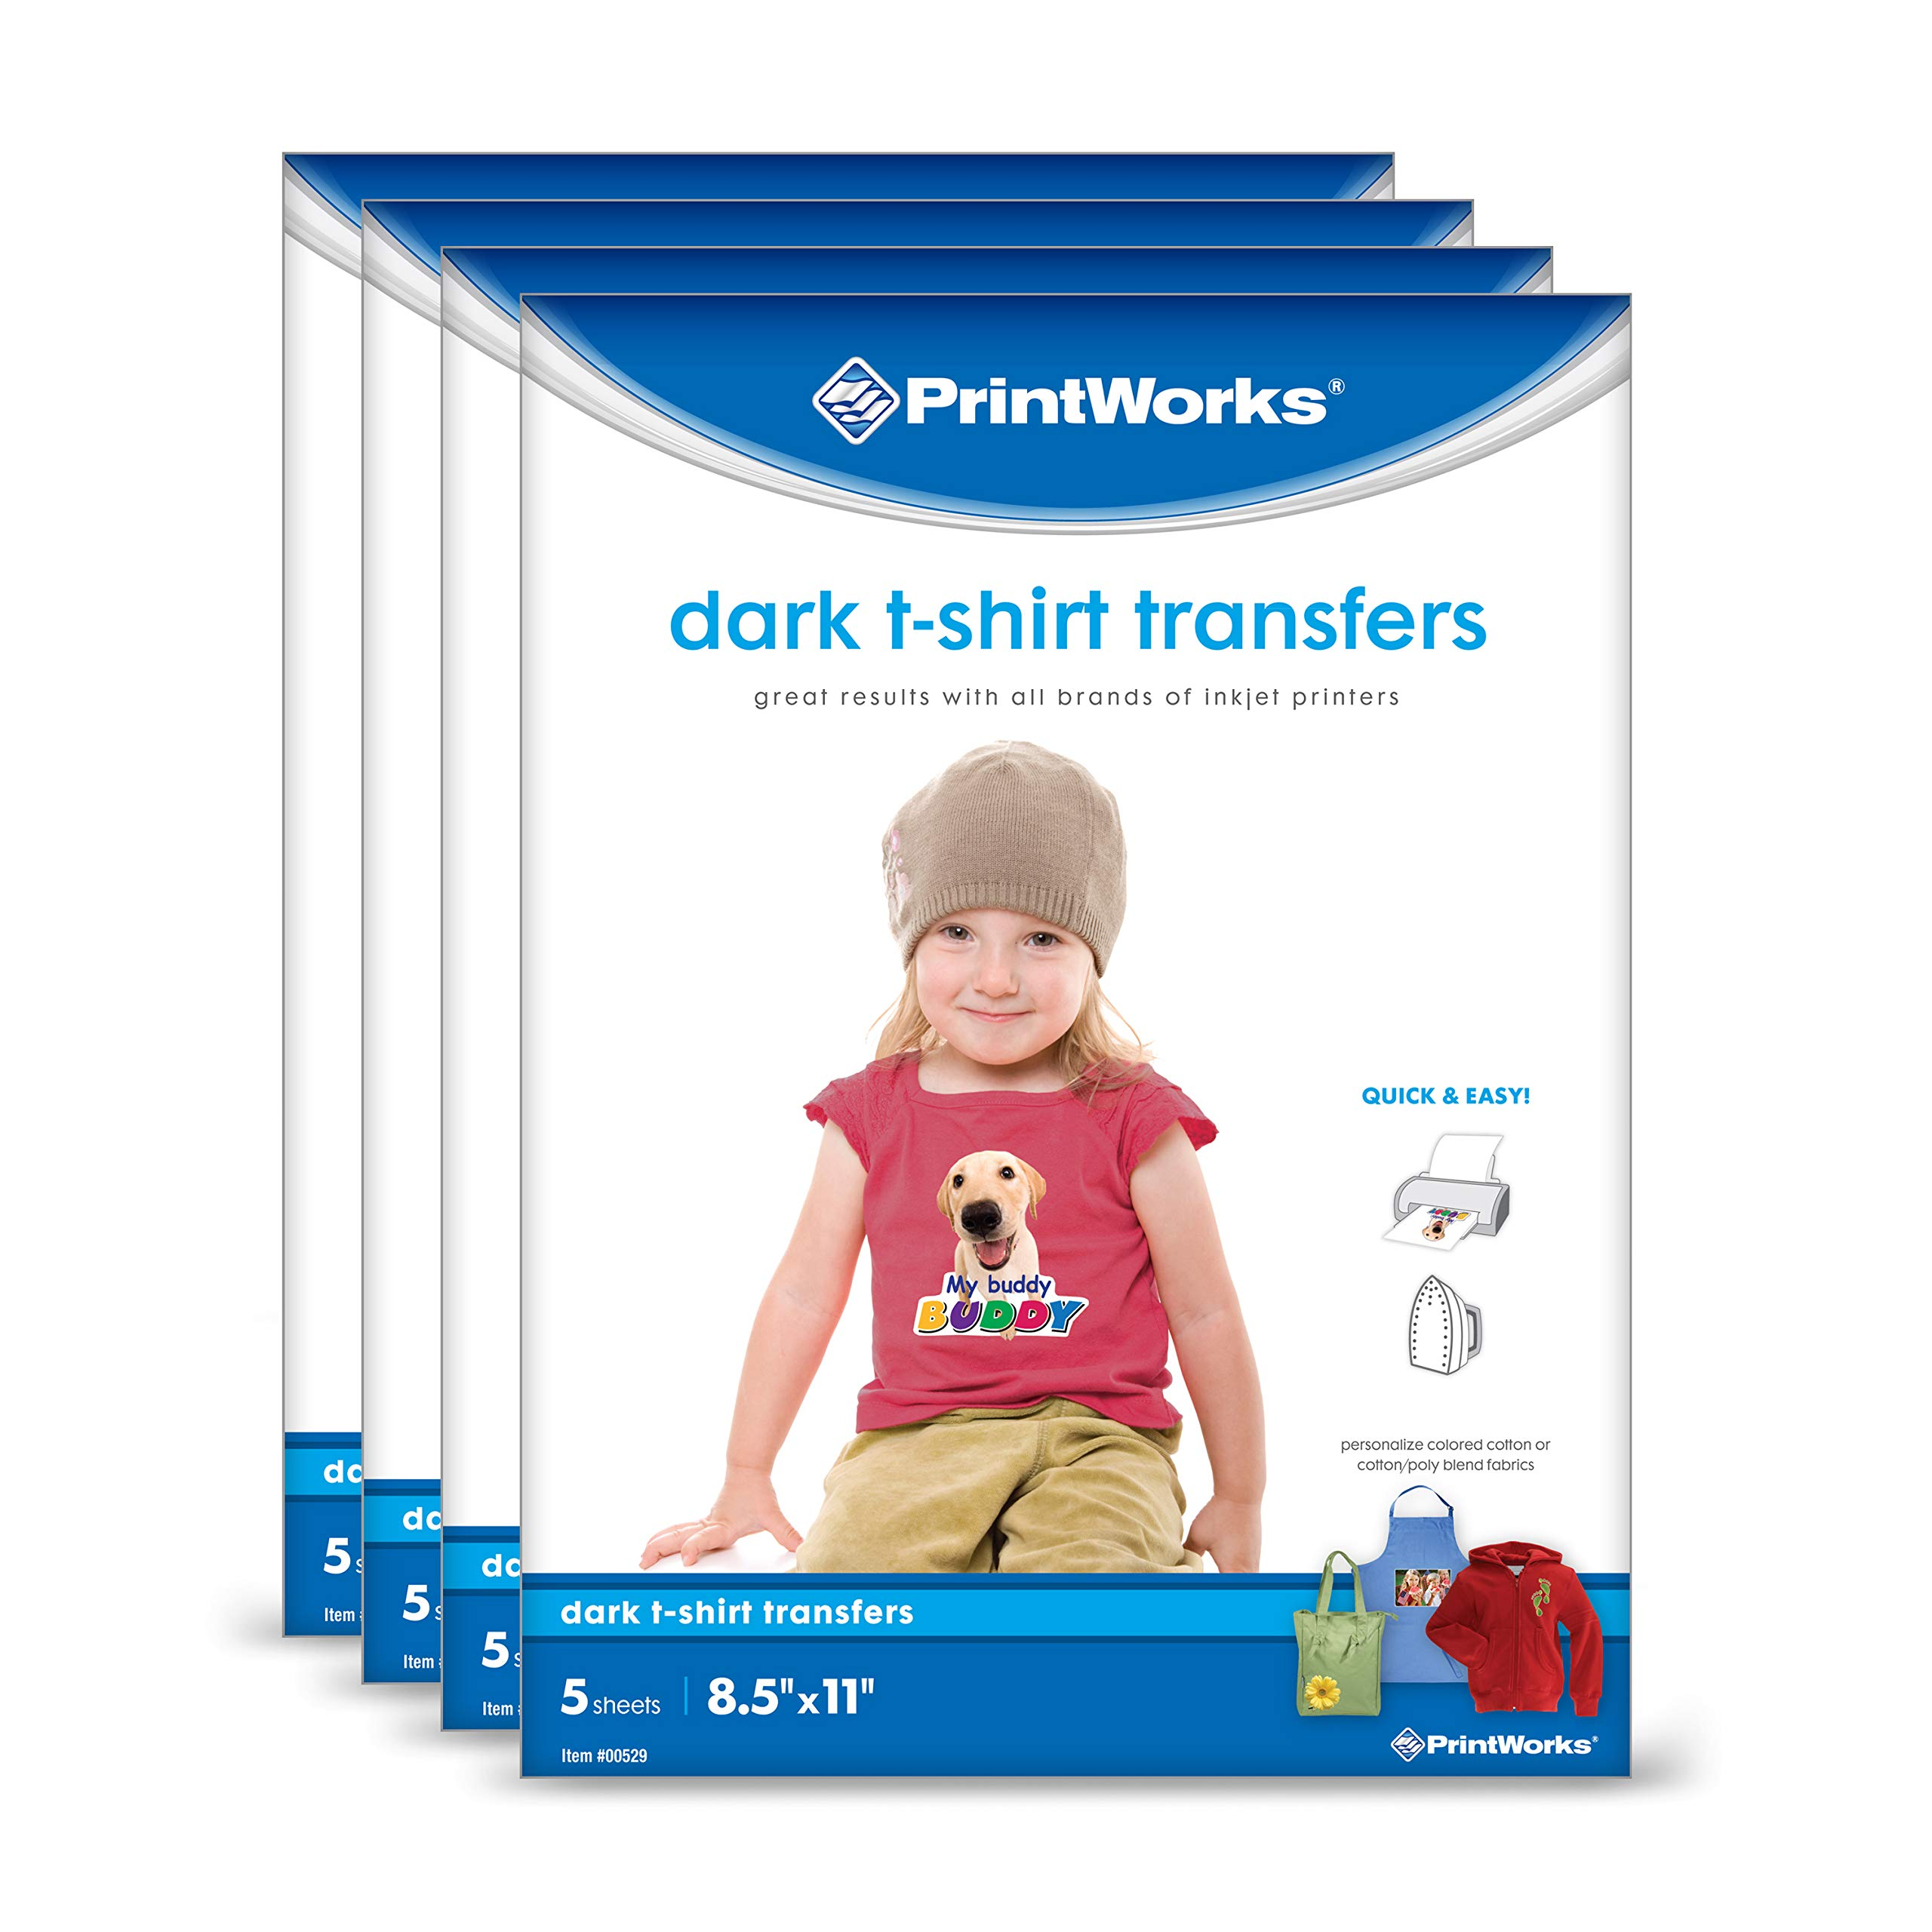 """Printworks Dark T-Shirt Transfers for Inkjet Printers, For Use on Dark and Light/White Fabrics, Photo Quality Prints, 20 Sheets,(4-pack Bundle) 8 ½"""" x 11"""" (00545)"""